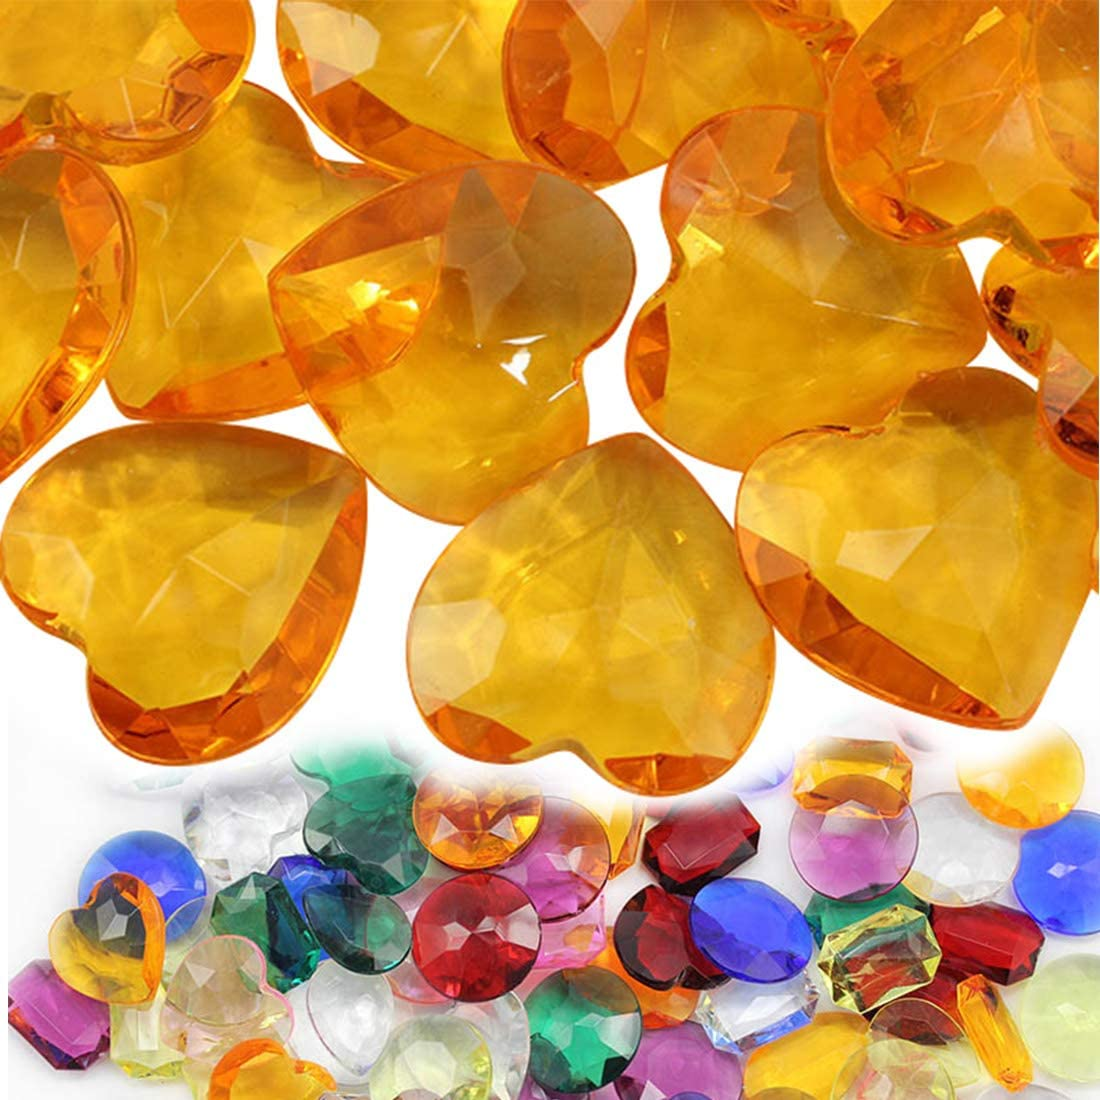 27mm Amber CH16 Heart Acrylic Pirate Treasure Gems Plastic Jewels for Party & Games, Table Scatter, Vase Fillers, Wedding Decor Gemstones Favors - 20 Pieces